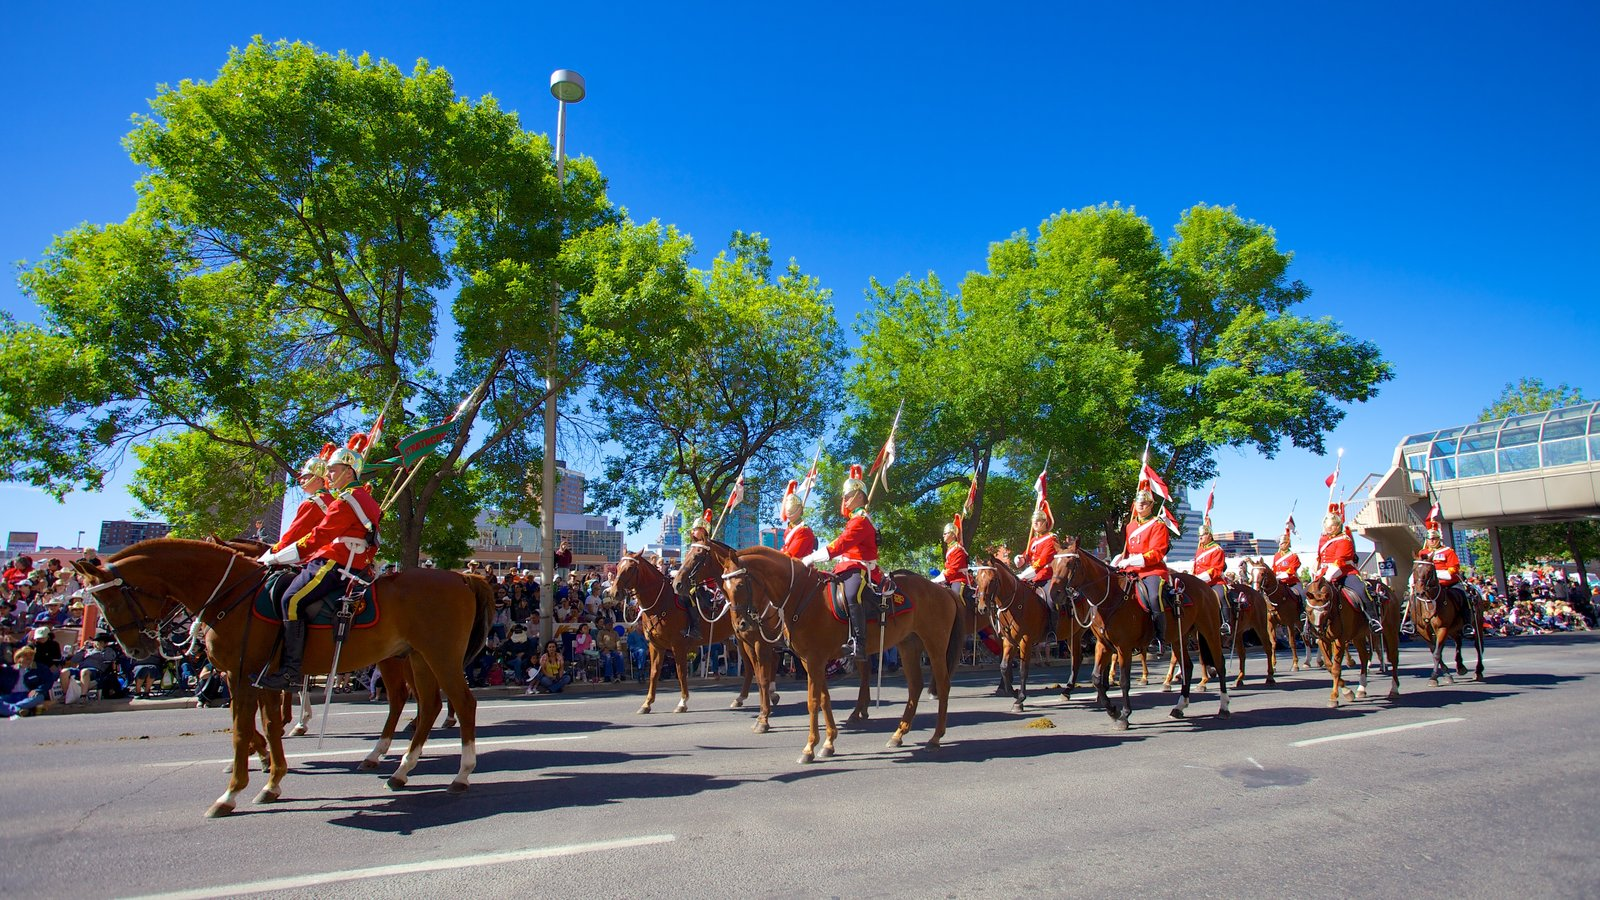 Calgary featuring a festival, street scenes and horse riding